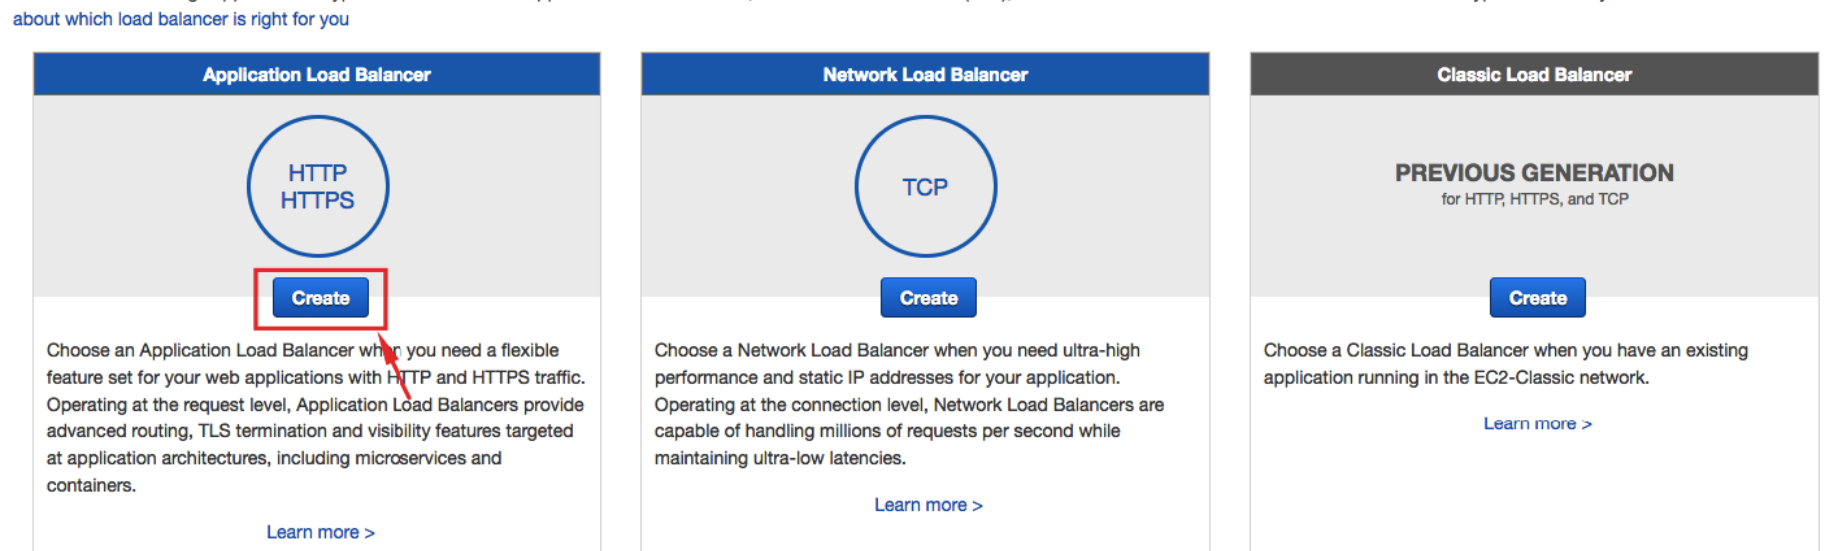 How to use AWS Application Load Balancer to setup Multi-Site